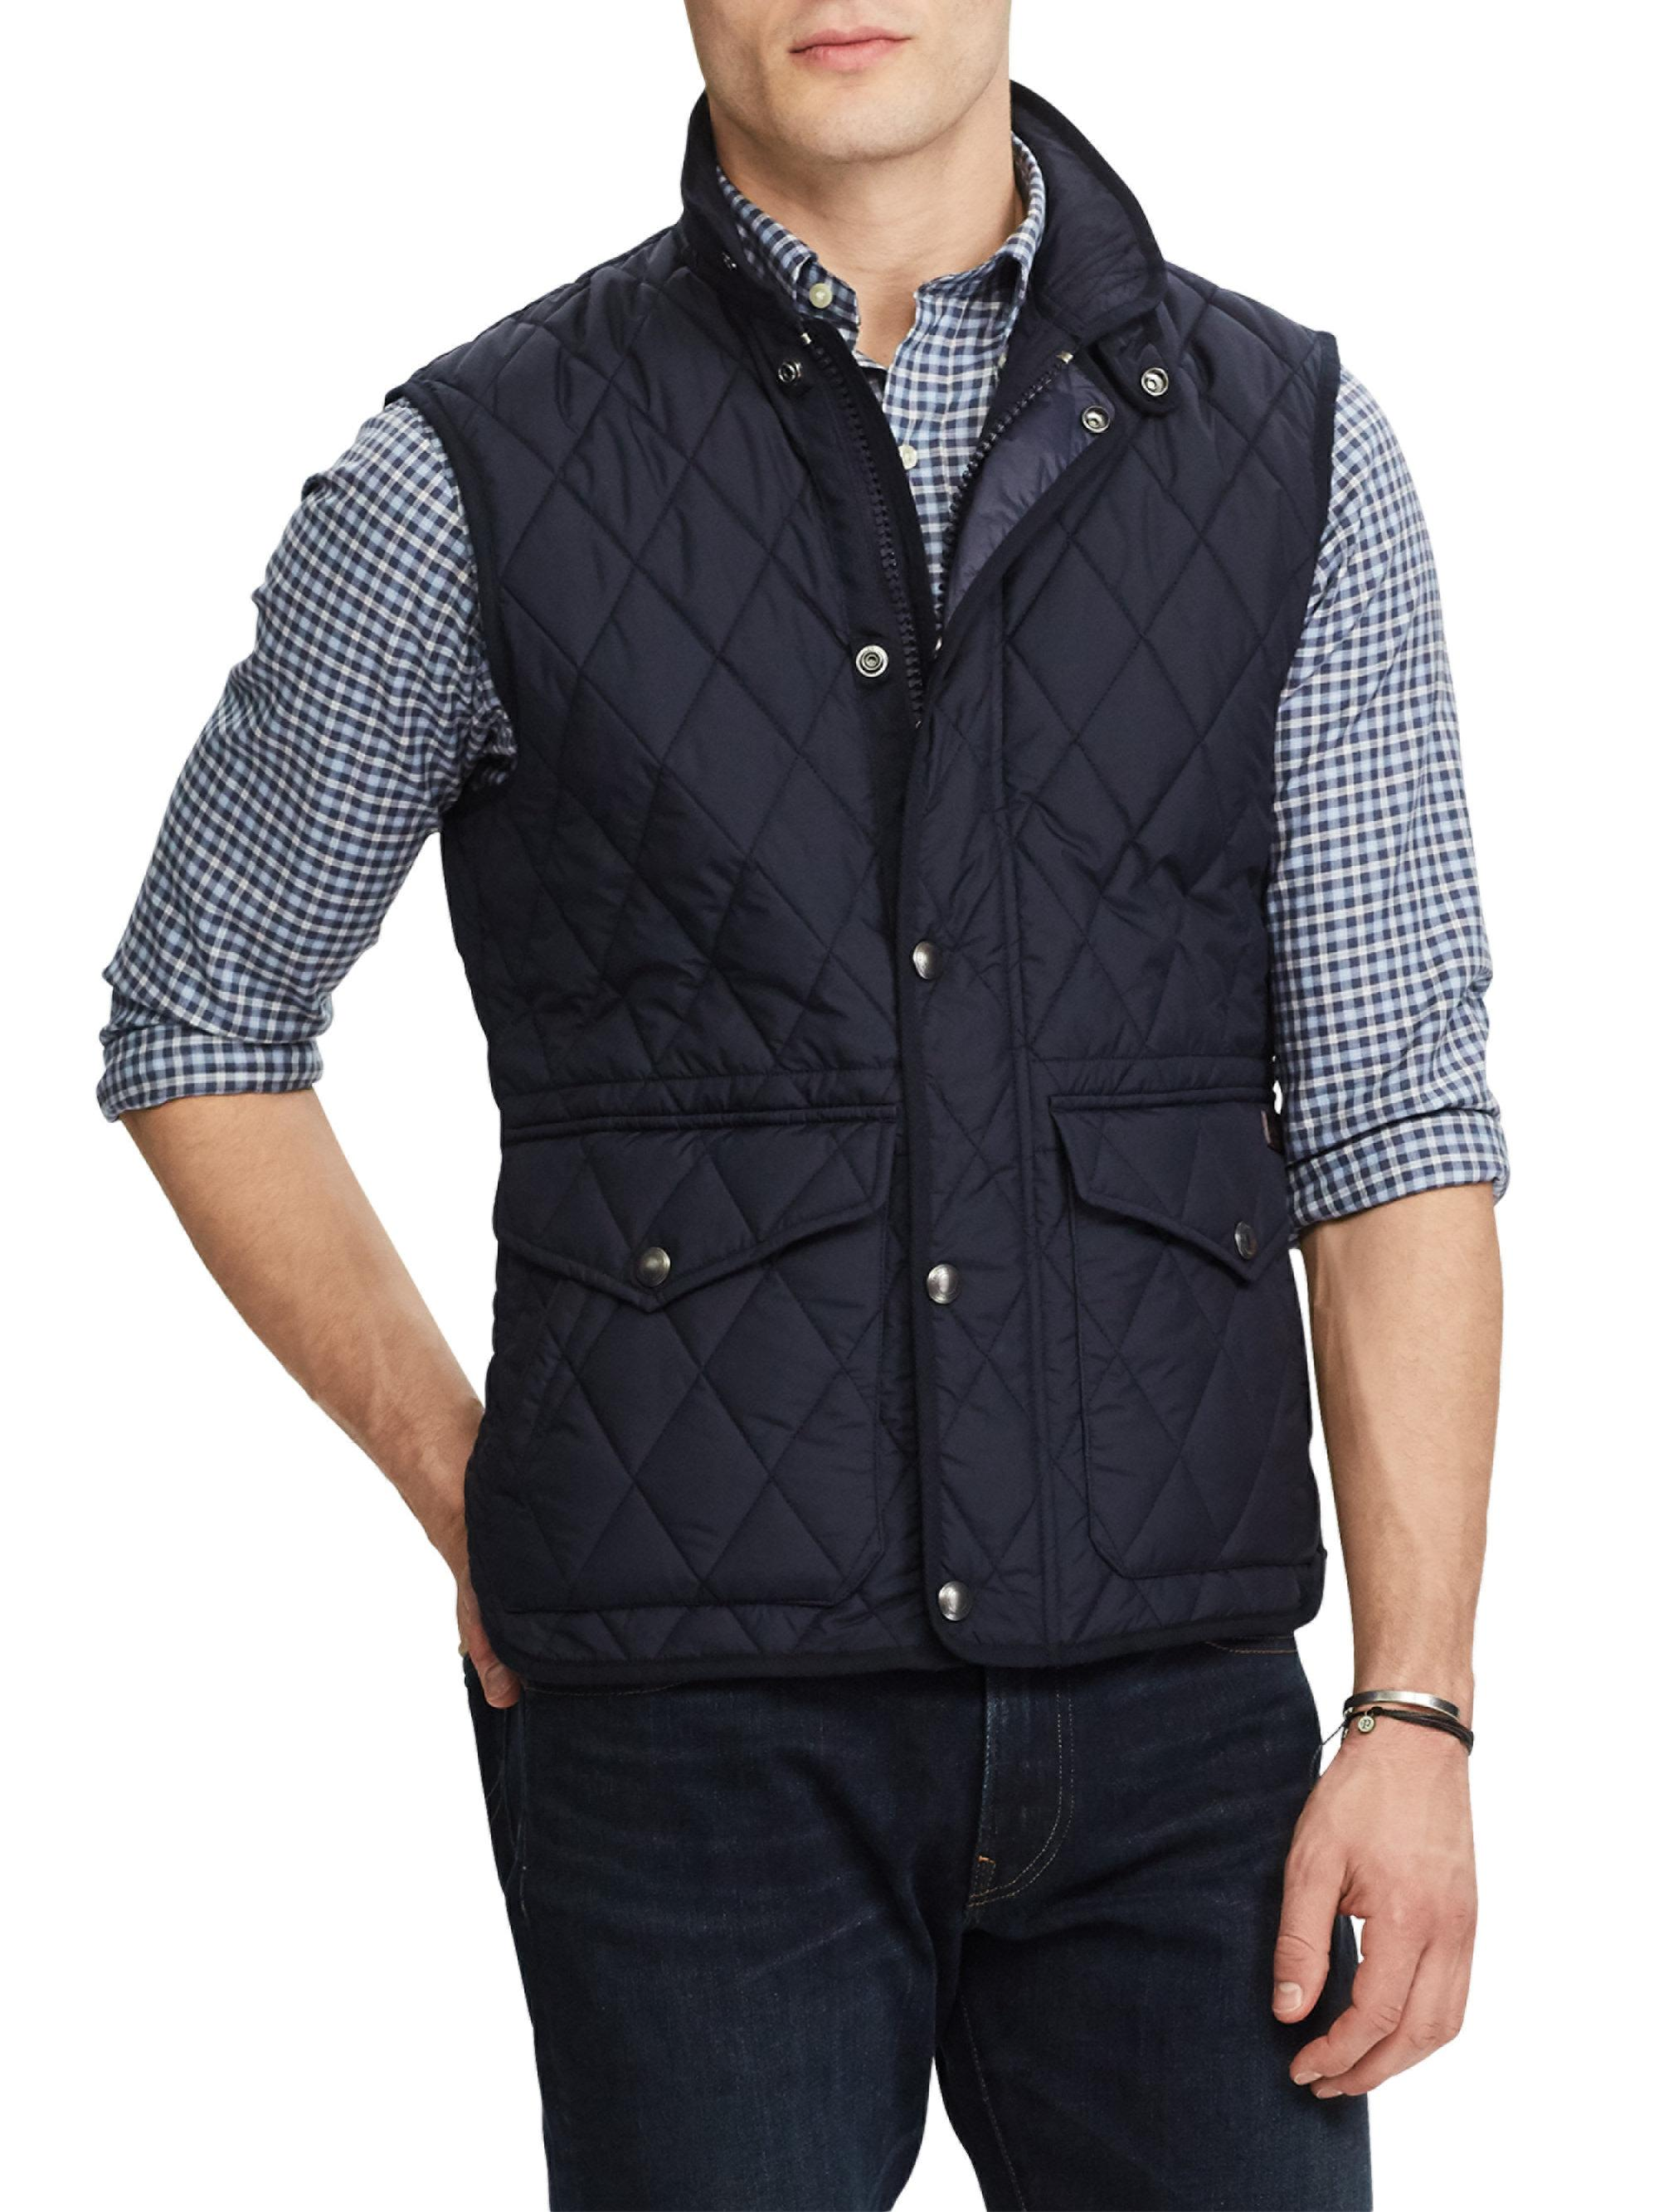 illegal lauren quilted is make to mens quilt product normal it jacket ralph polo your bomber red own band